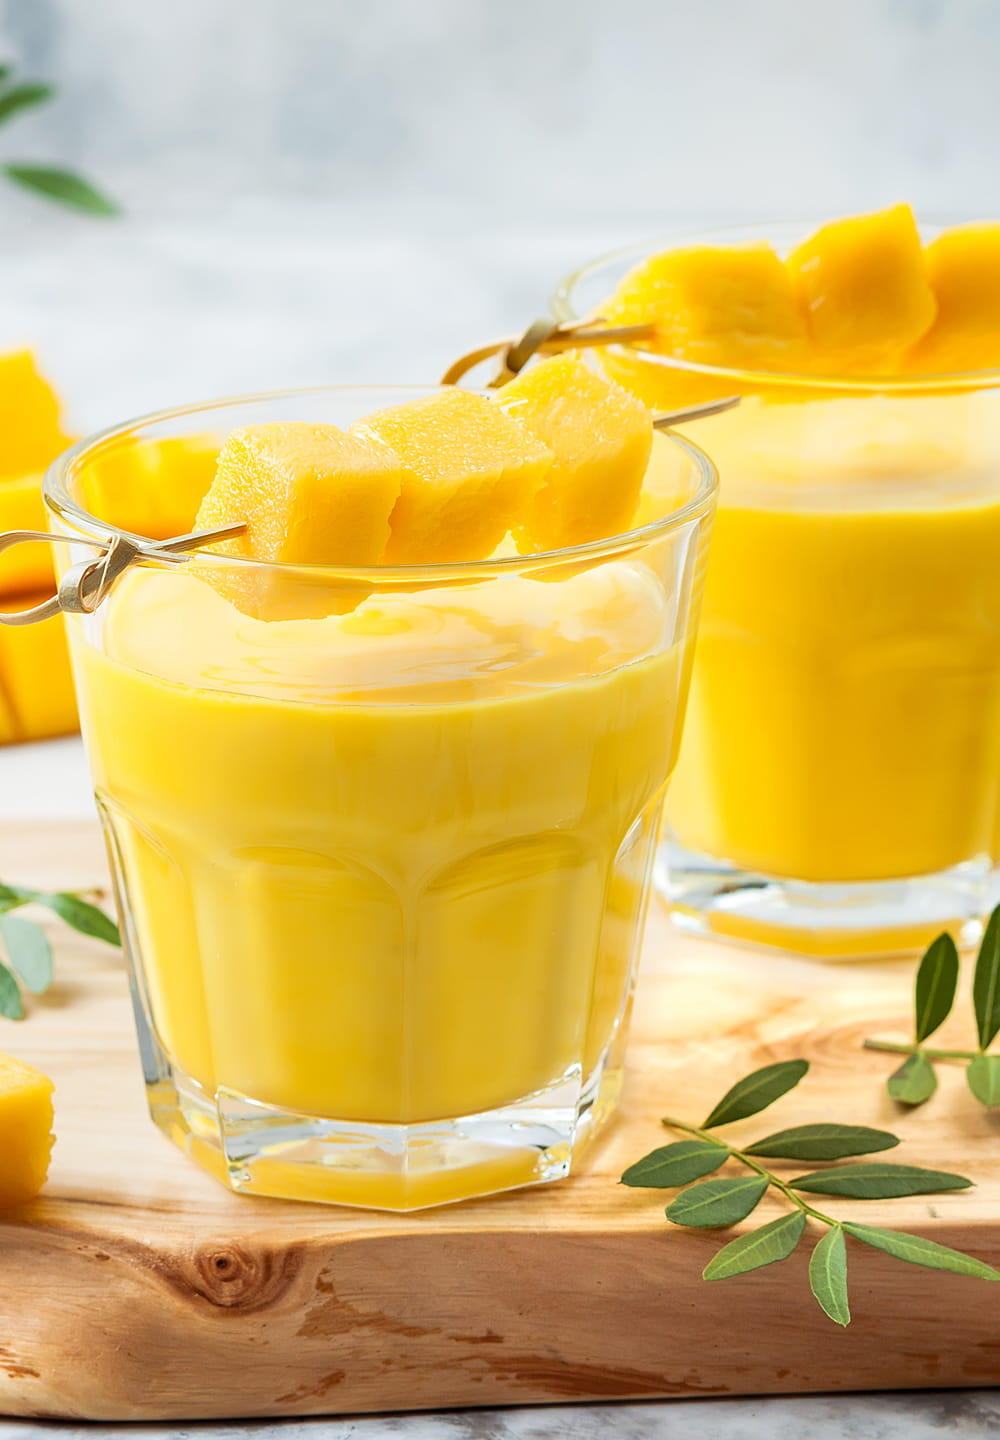 Mango & Honey Smoothie